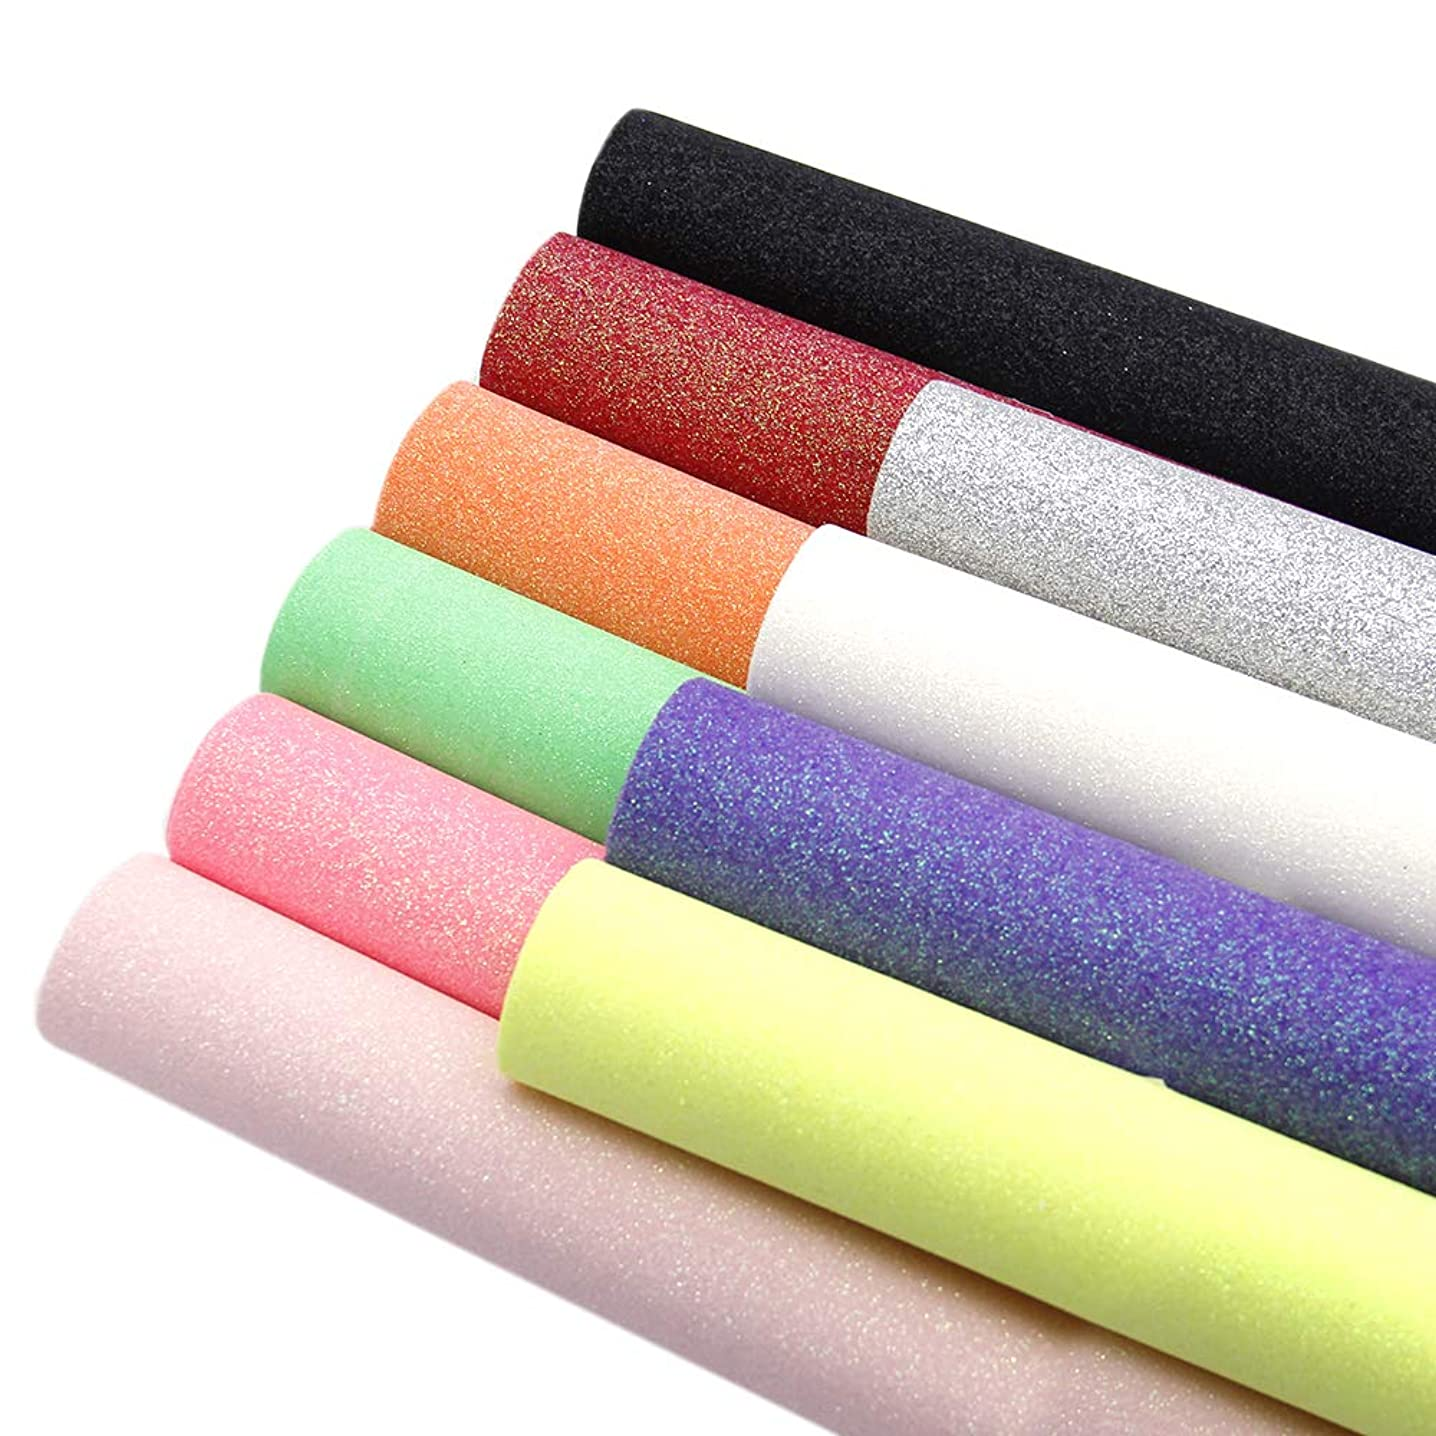 David accessories Shiny Superfine Glitter Faux Leather Sheets Solid Color Synthetic Leather Fabric 10 Pcs 8 x 13